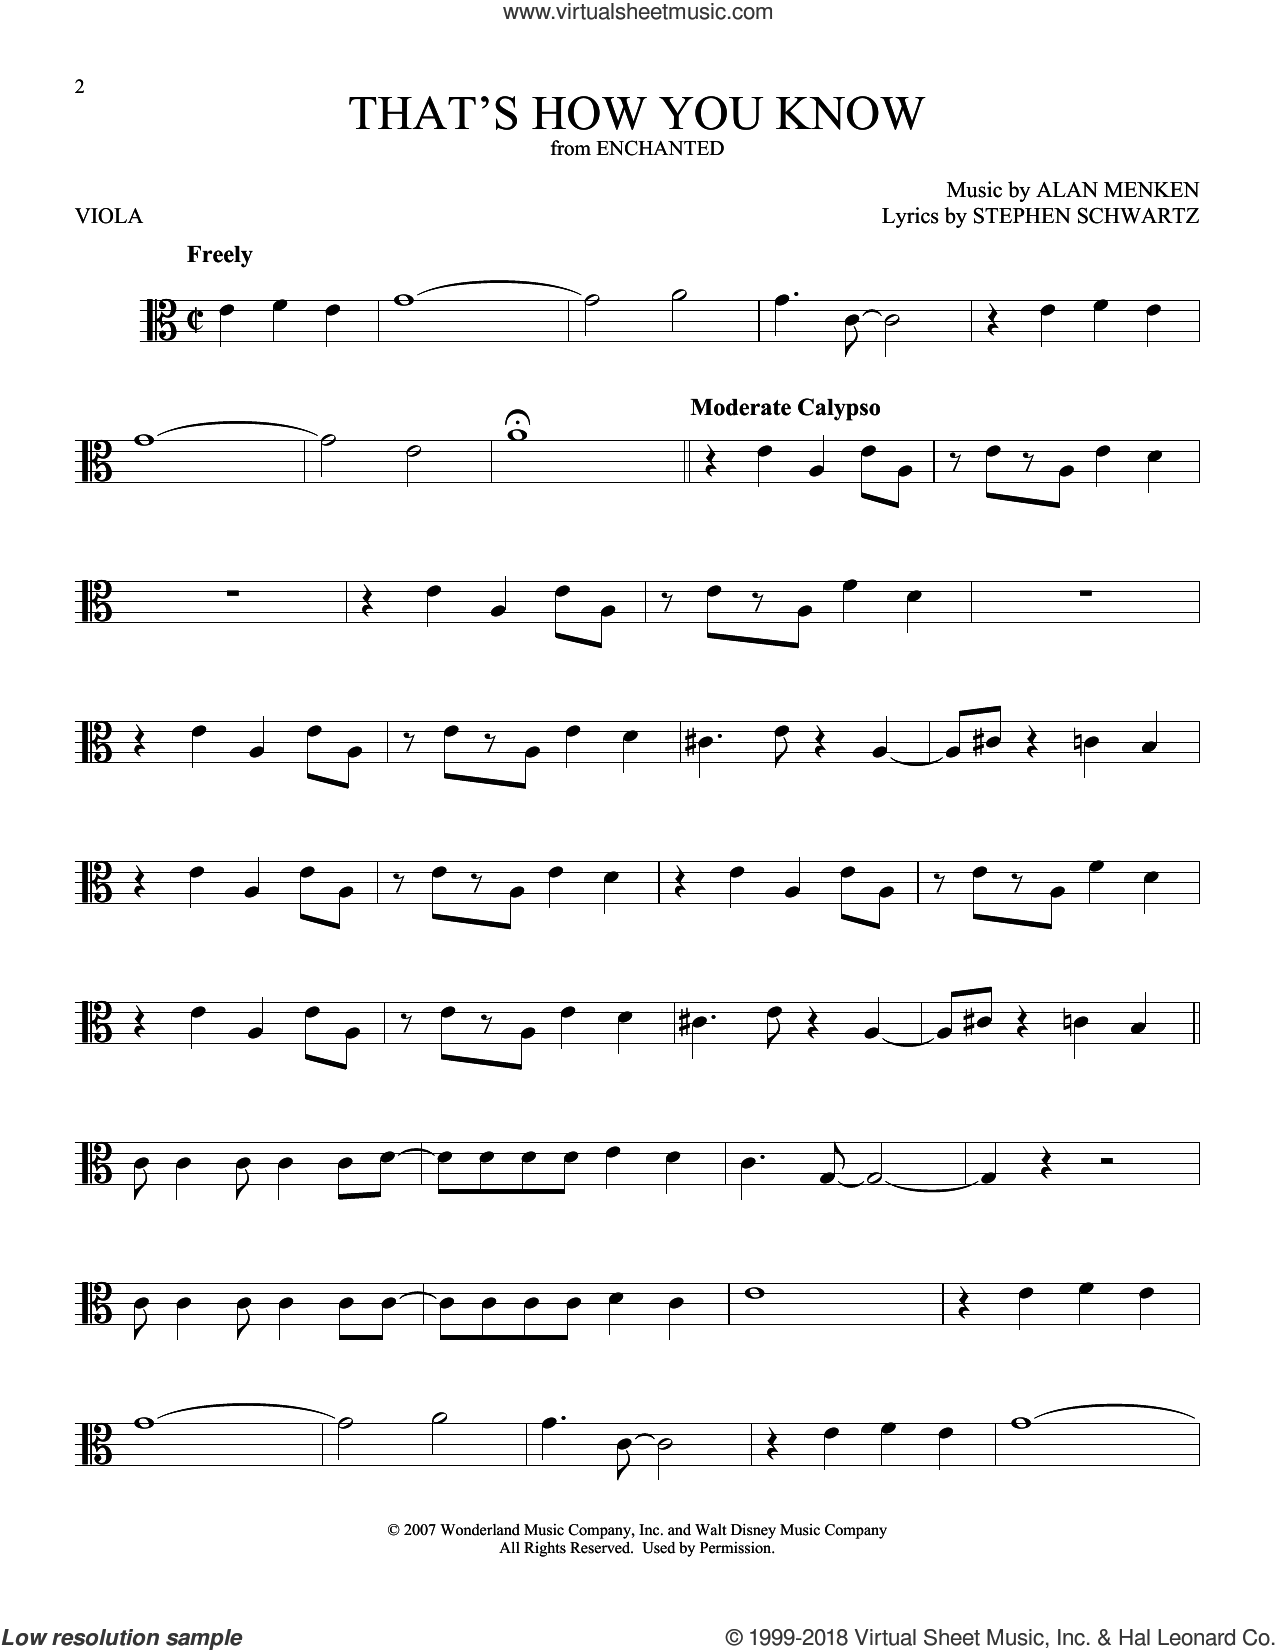 That's How You Know sheet music for viola solo by Alan Menken and Stephen Schwartz, intermediate skill level